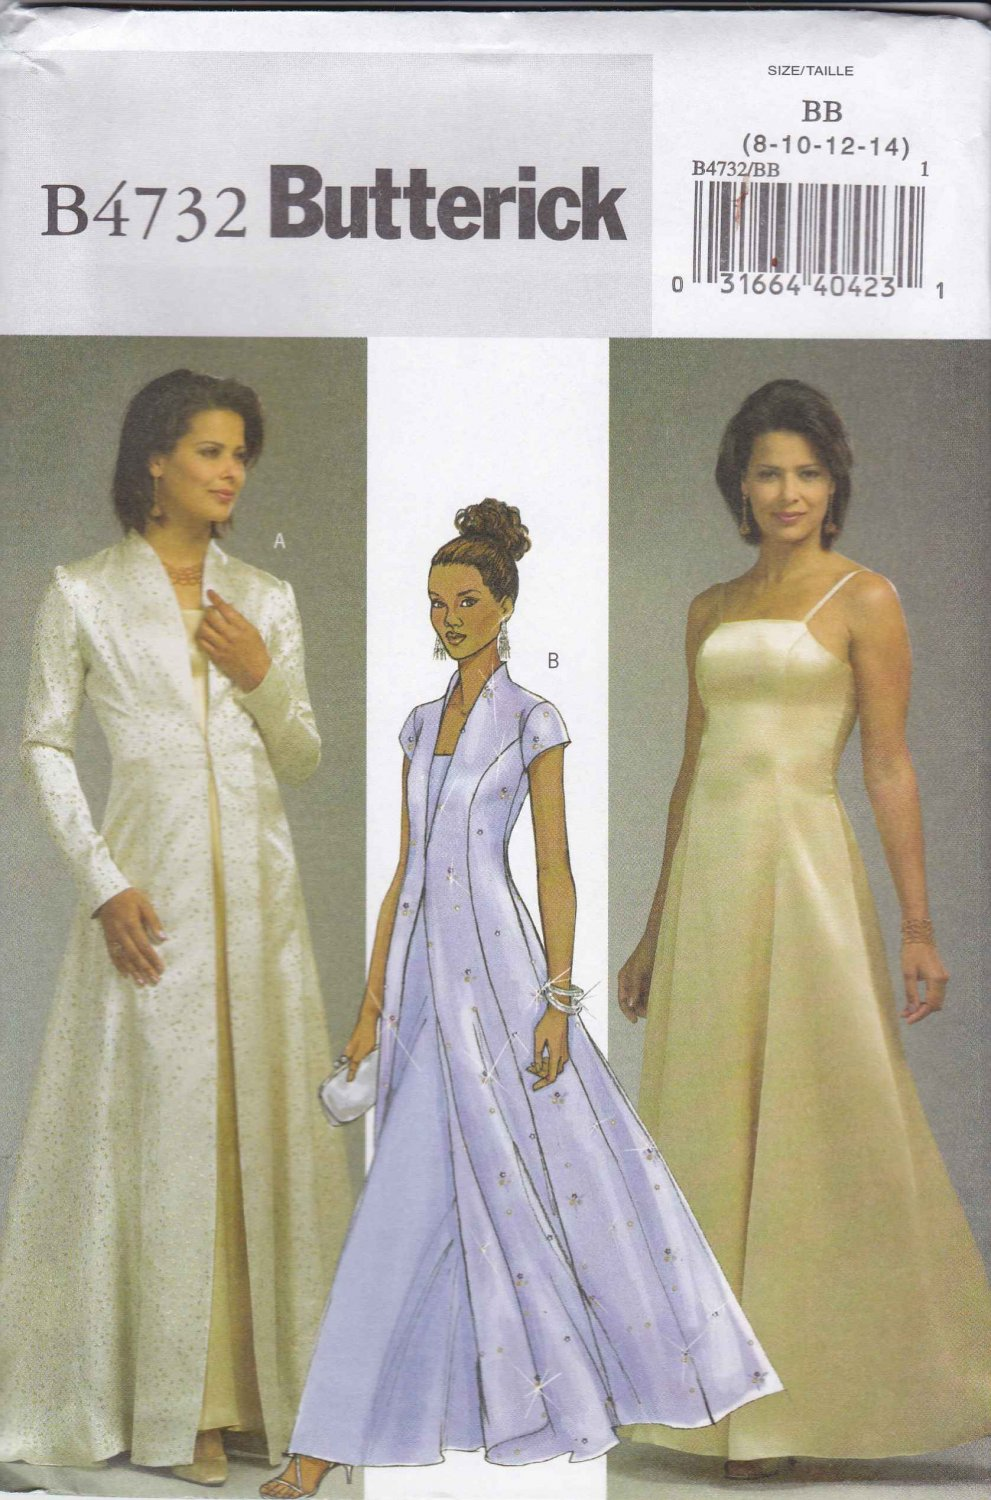 Butterick Sewing Pattern 4732 Misses Size 16-18-20-22 Princess Seam Evening Gown Formal Coat